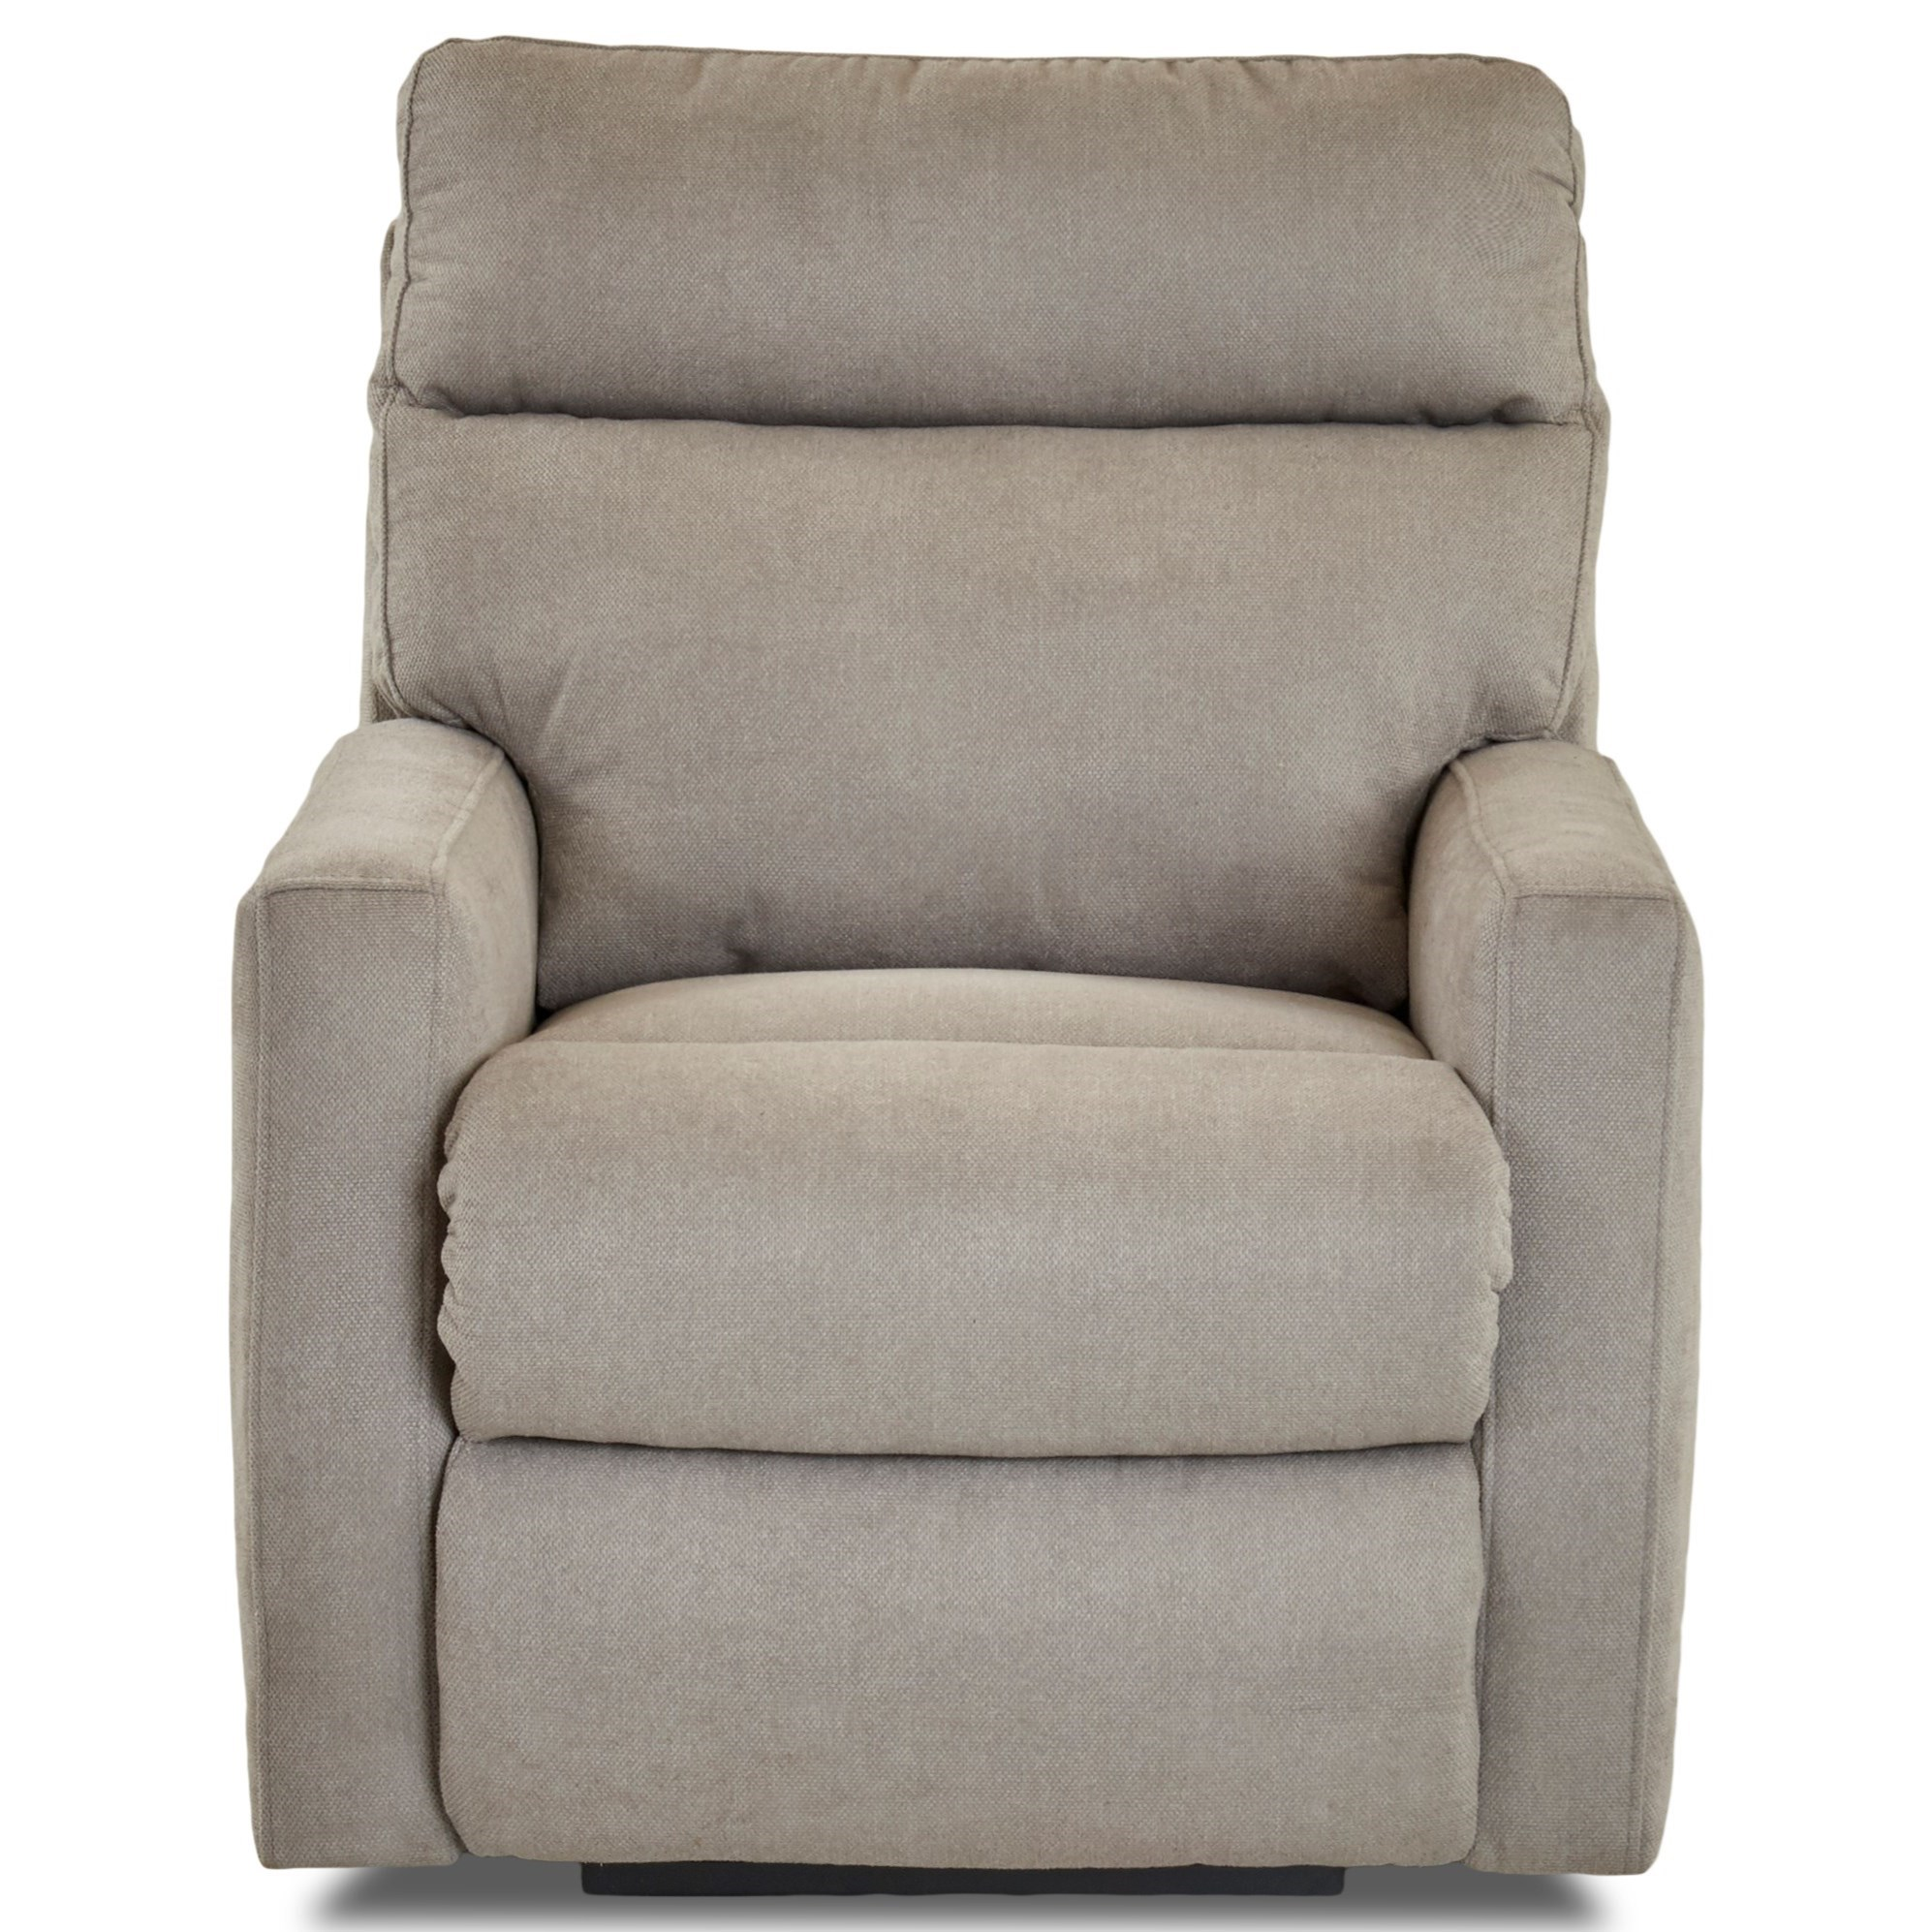 Swivel Rocking Reclining Chair with Soft Track Arms